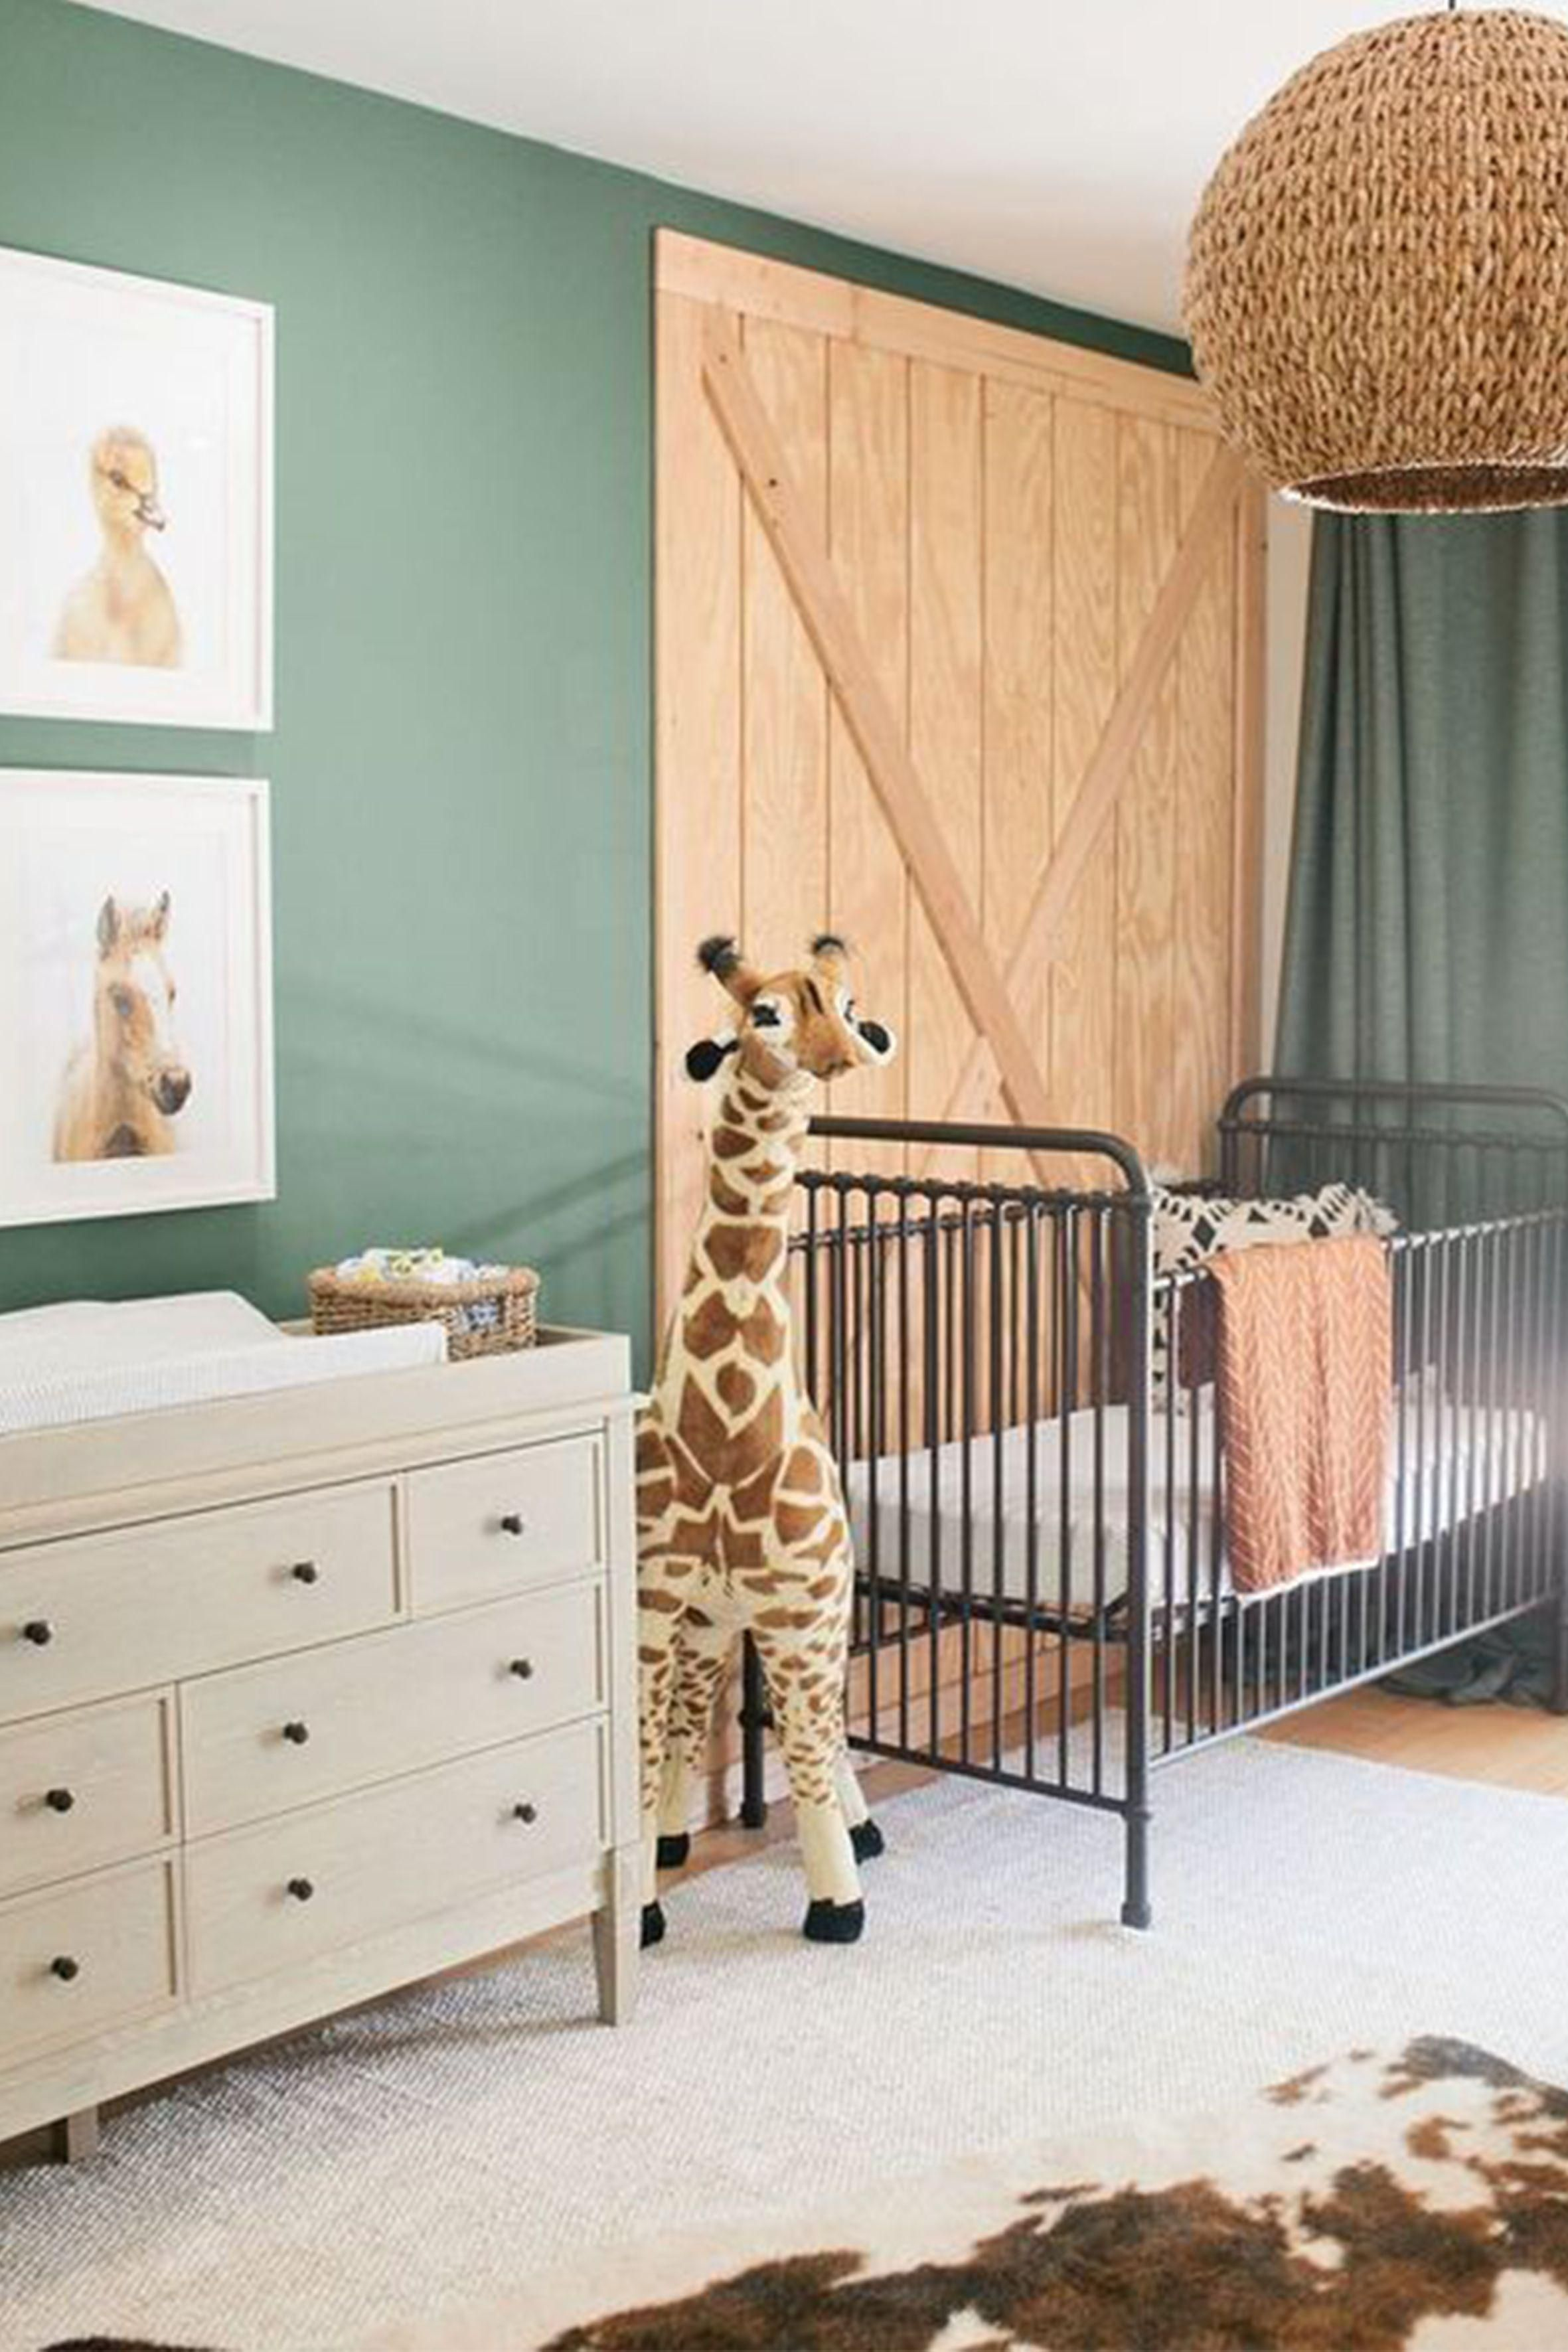 Fine Deco Chambre Jungle Bebe That You Must Know You Re In Good